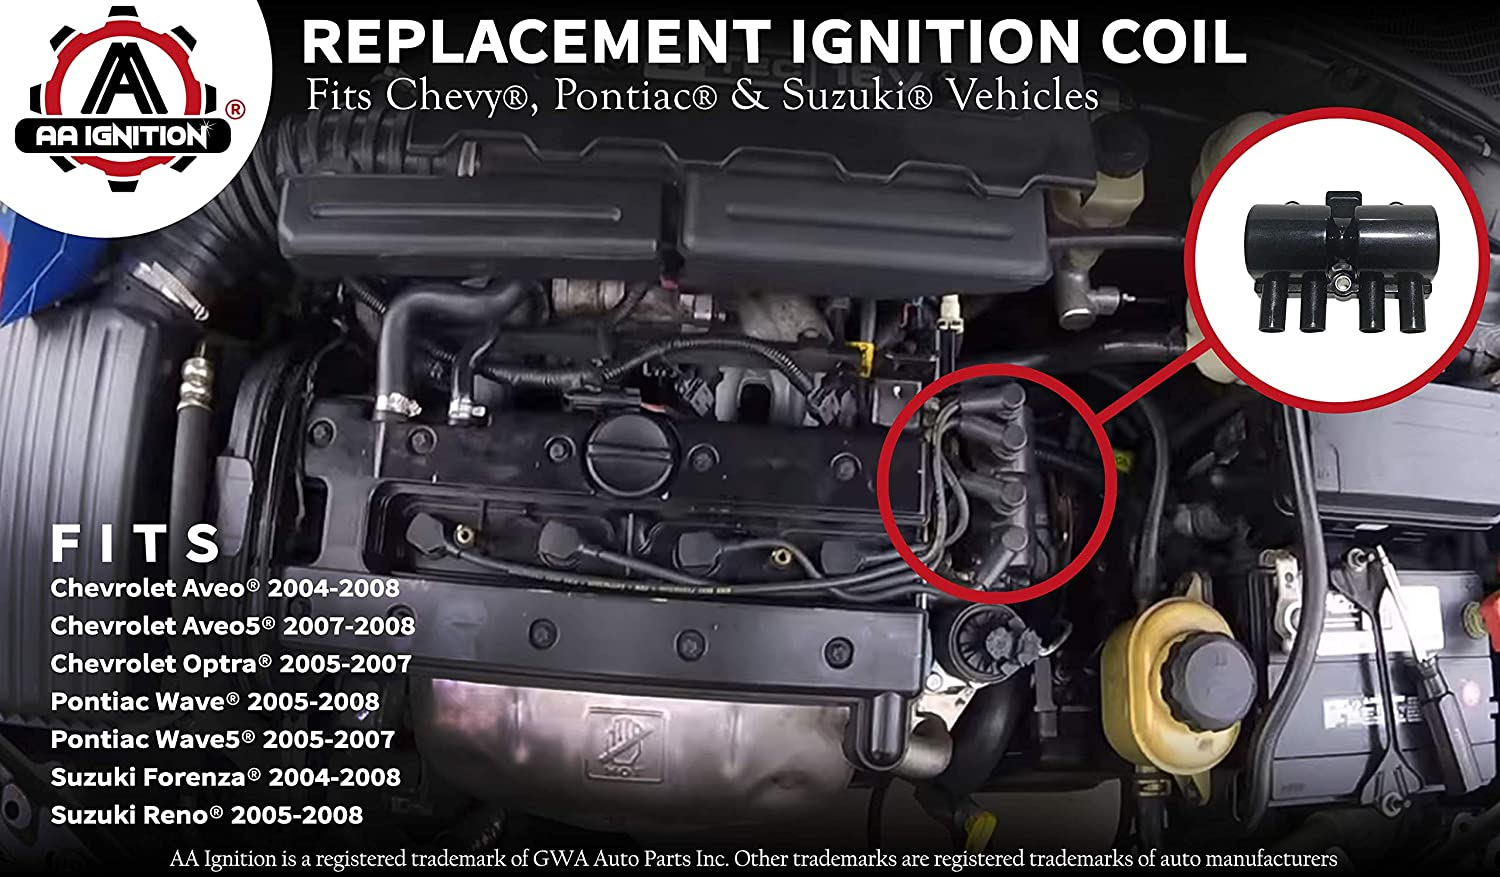 Amazon.com: Ignition Coil Pack Replacement - Compatible with Chevrolet,  Pontiac, Suzuki Vehicles - Aveo, Aveo5, Optra, Wave, Wave5, Forenza, Reno -  Replaces Part 25182496, 96253555, 33410-84Z01: Automotive | 2004 Chevy Aveo Engine Diagram |  | Amazon.com